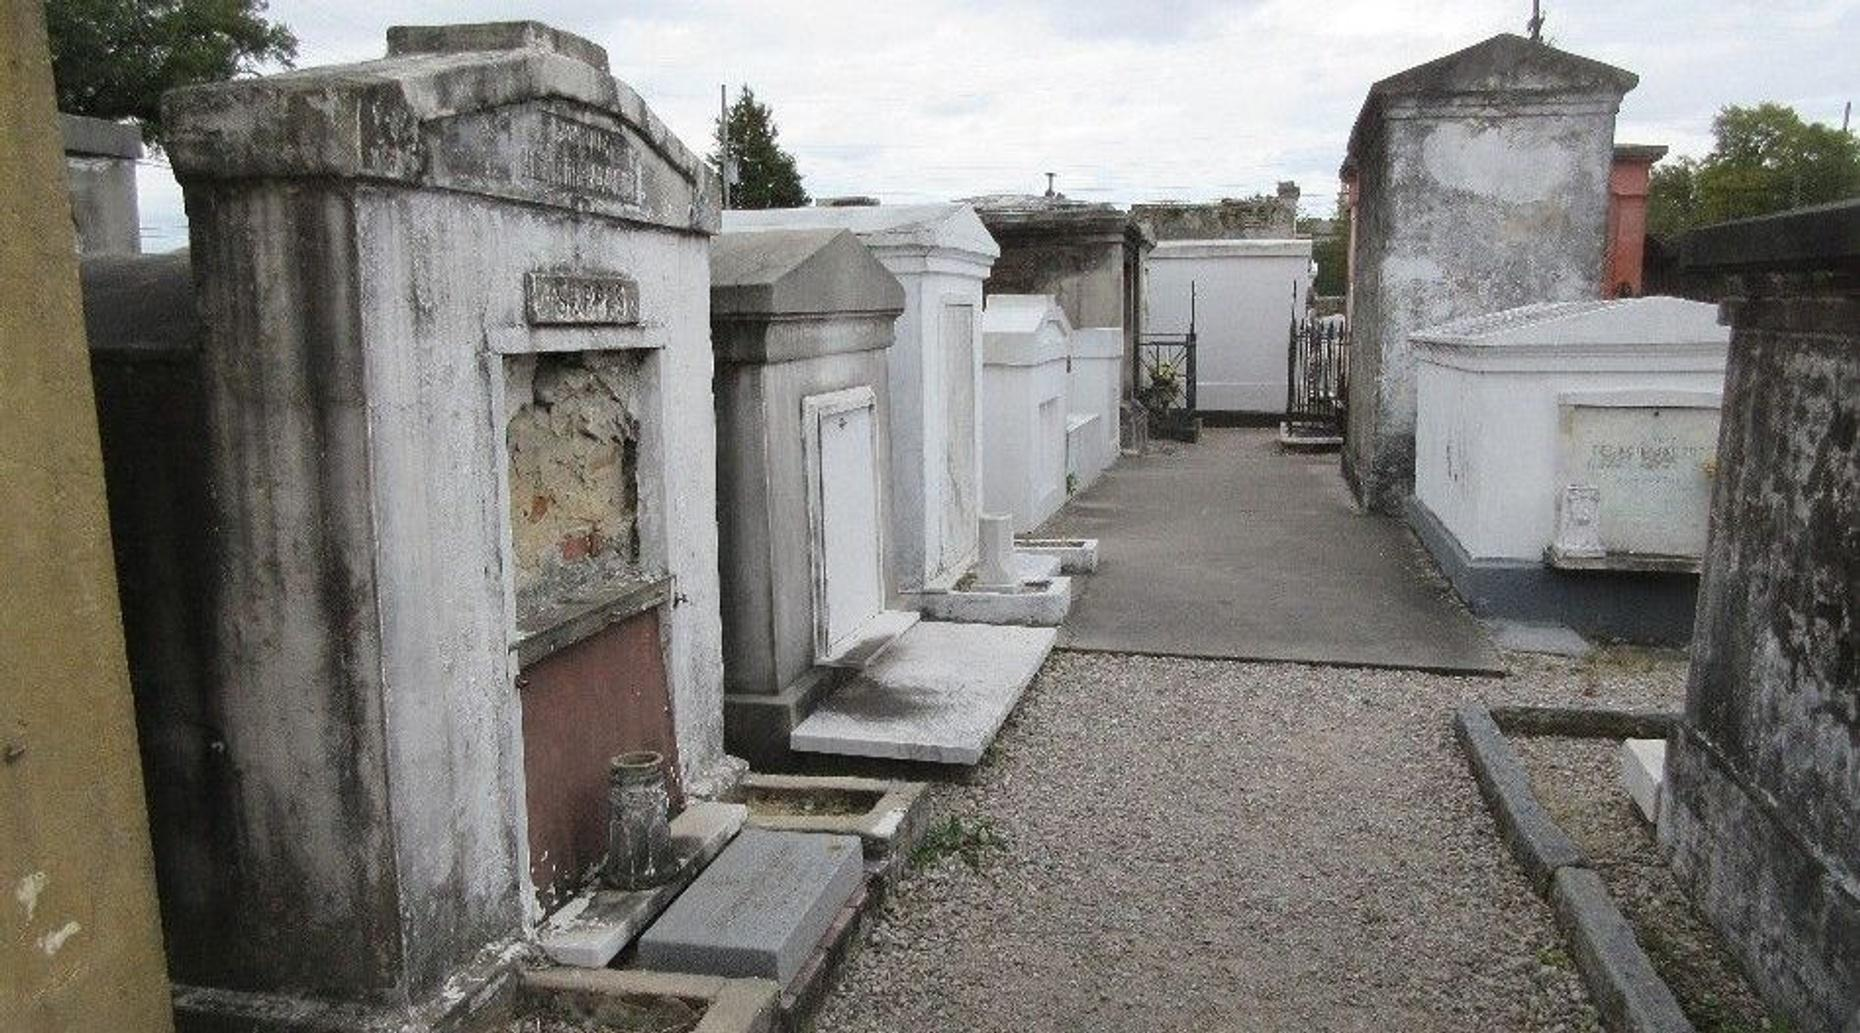 St. Louis Cemetery No. 1 in New Orleans